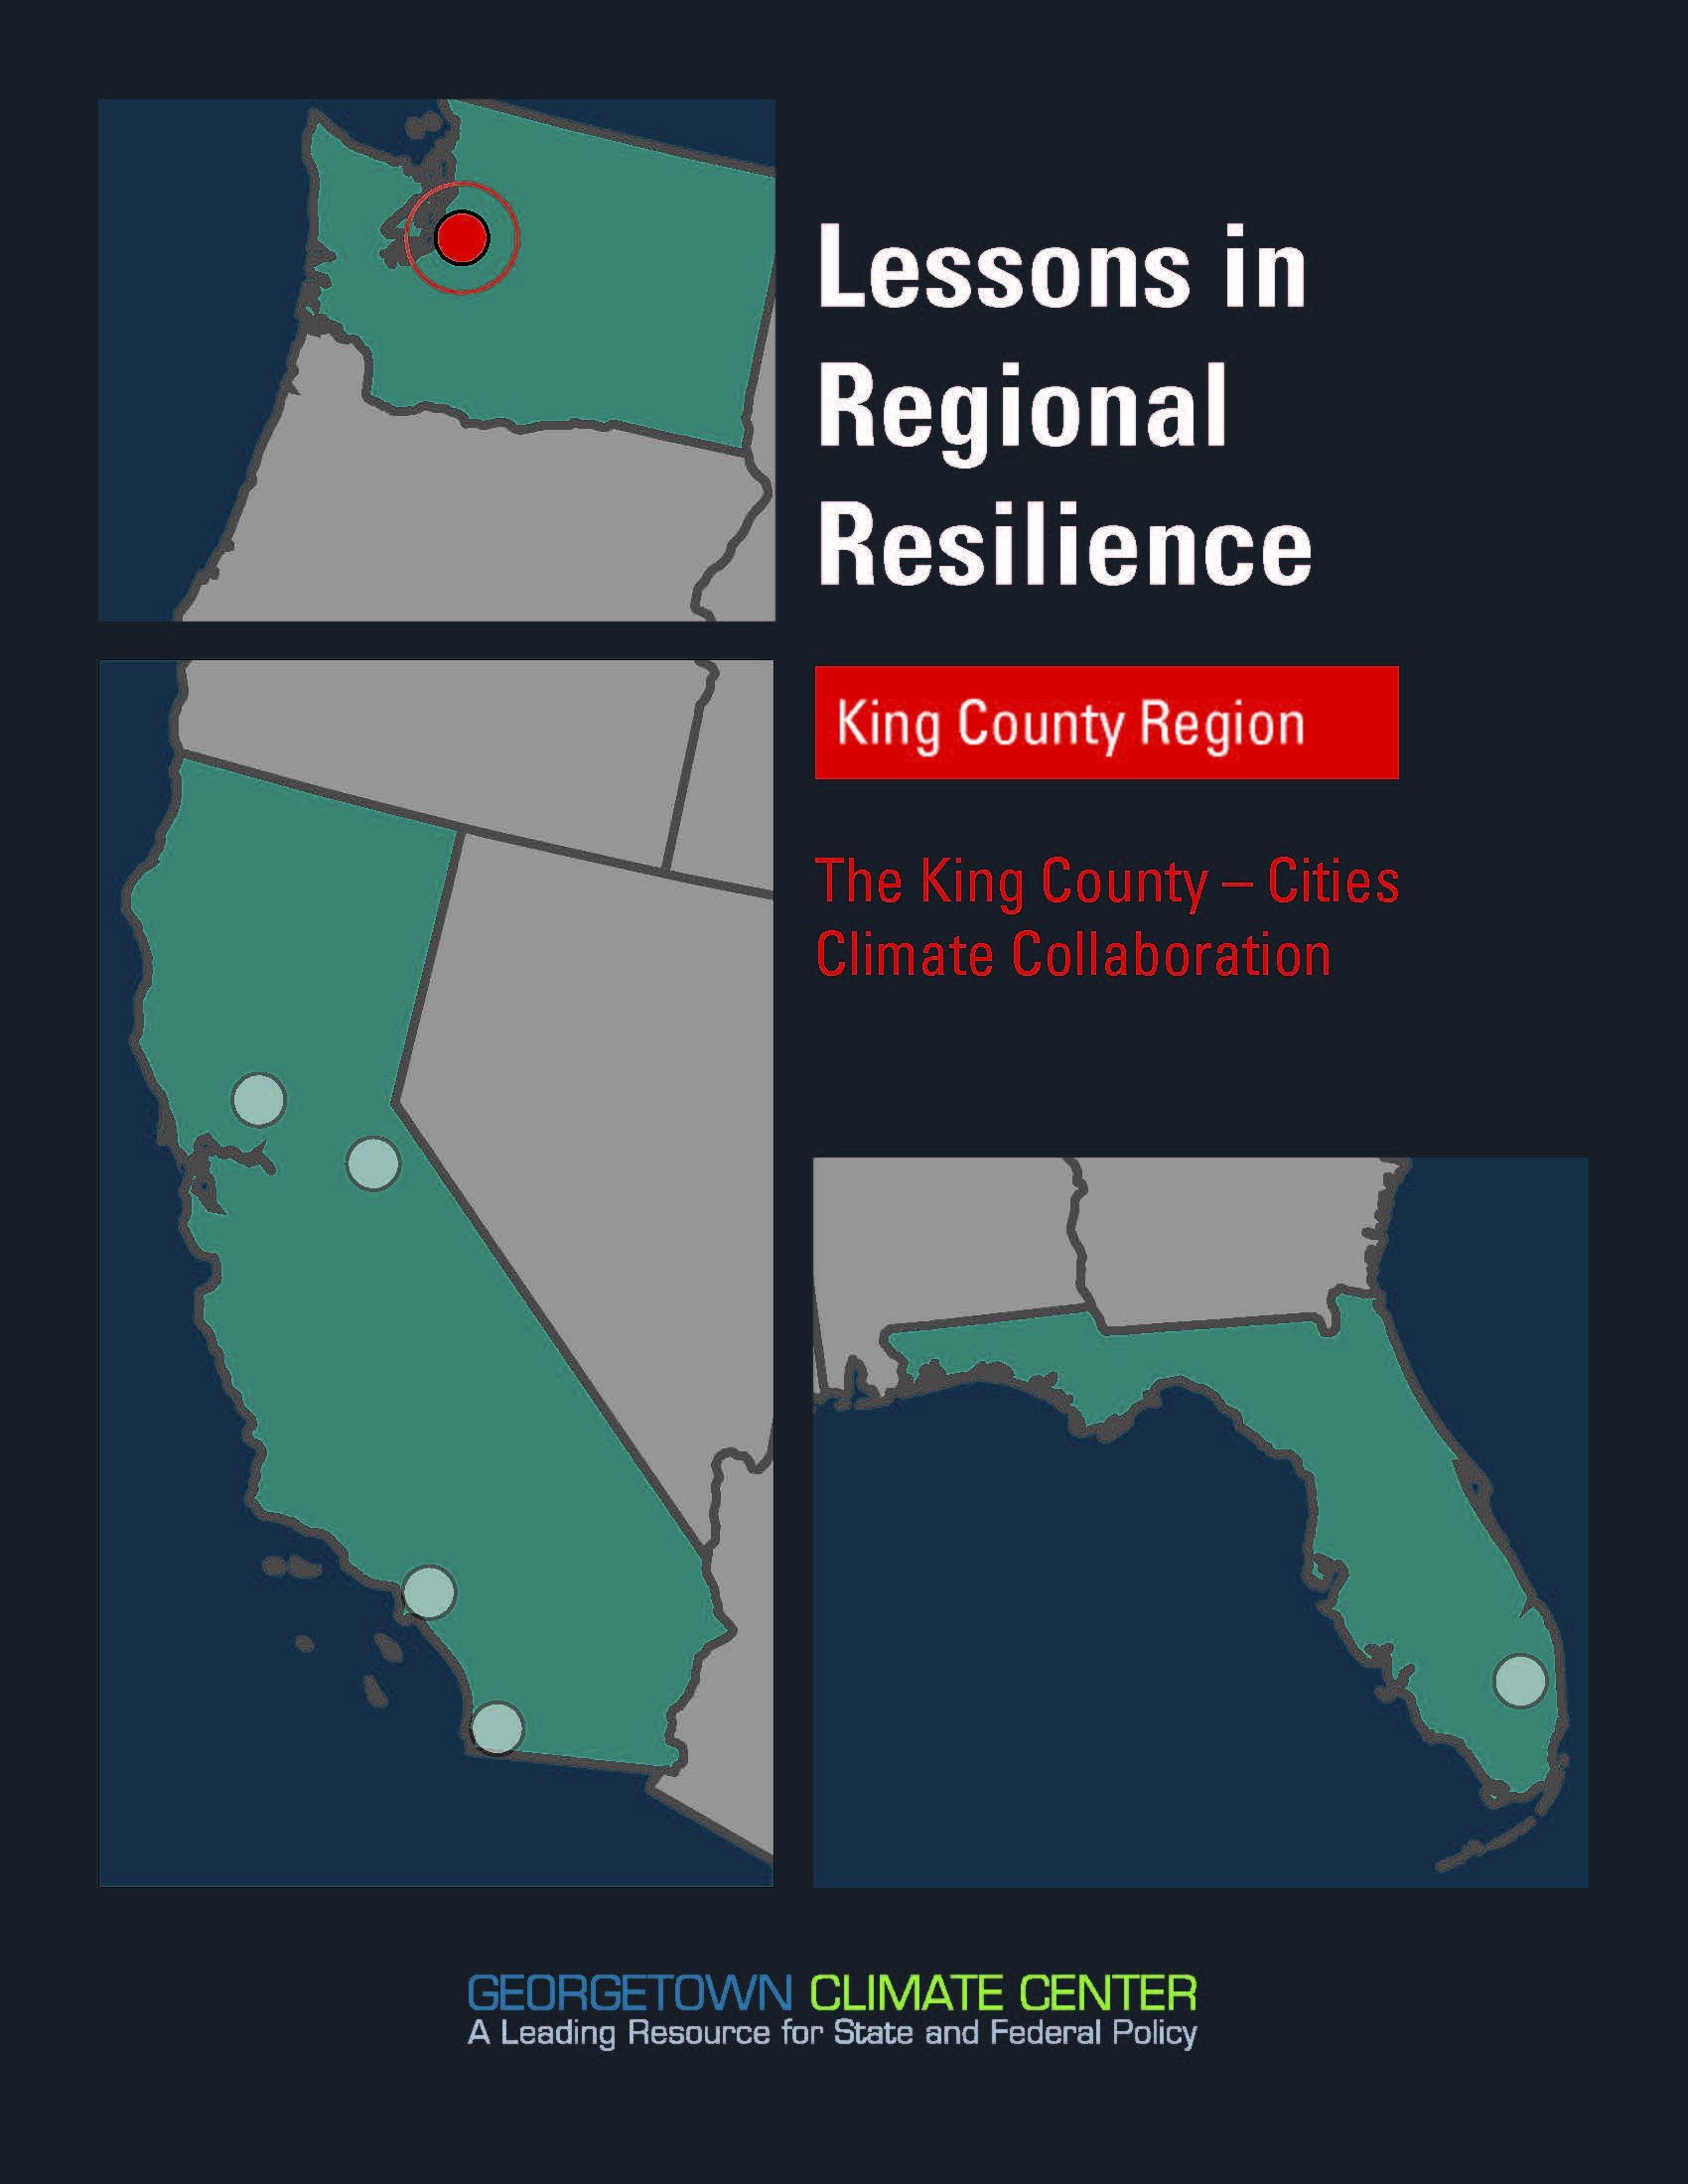 Lessons in Regional Resilience: The King County - Cities Climate Collaboration